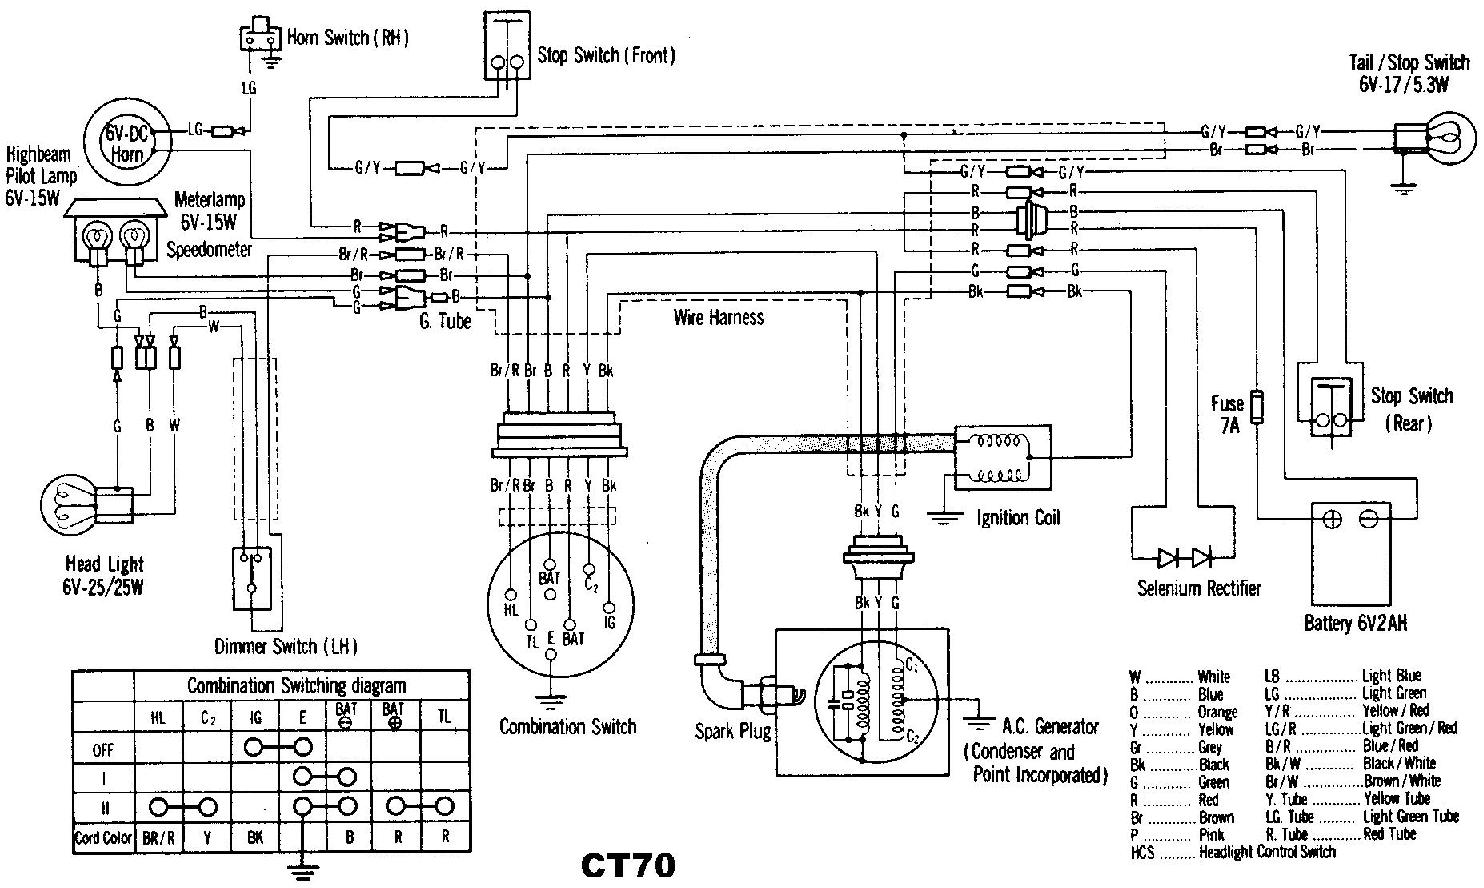 dratv_2269_123803613 diagram for honda c70 wiring wiring diagrams instruction c70 wiring diagram at bakdesigns.co